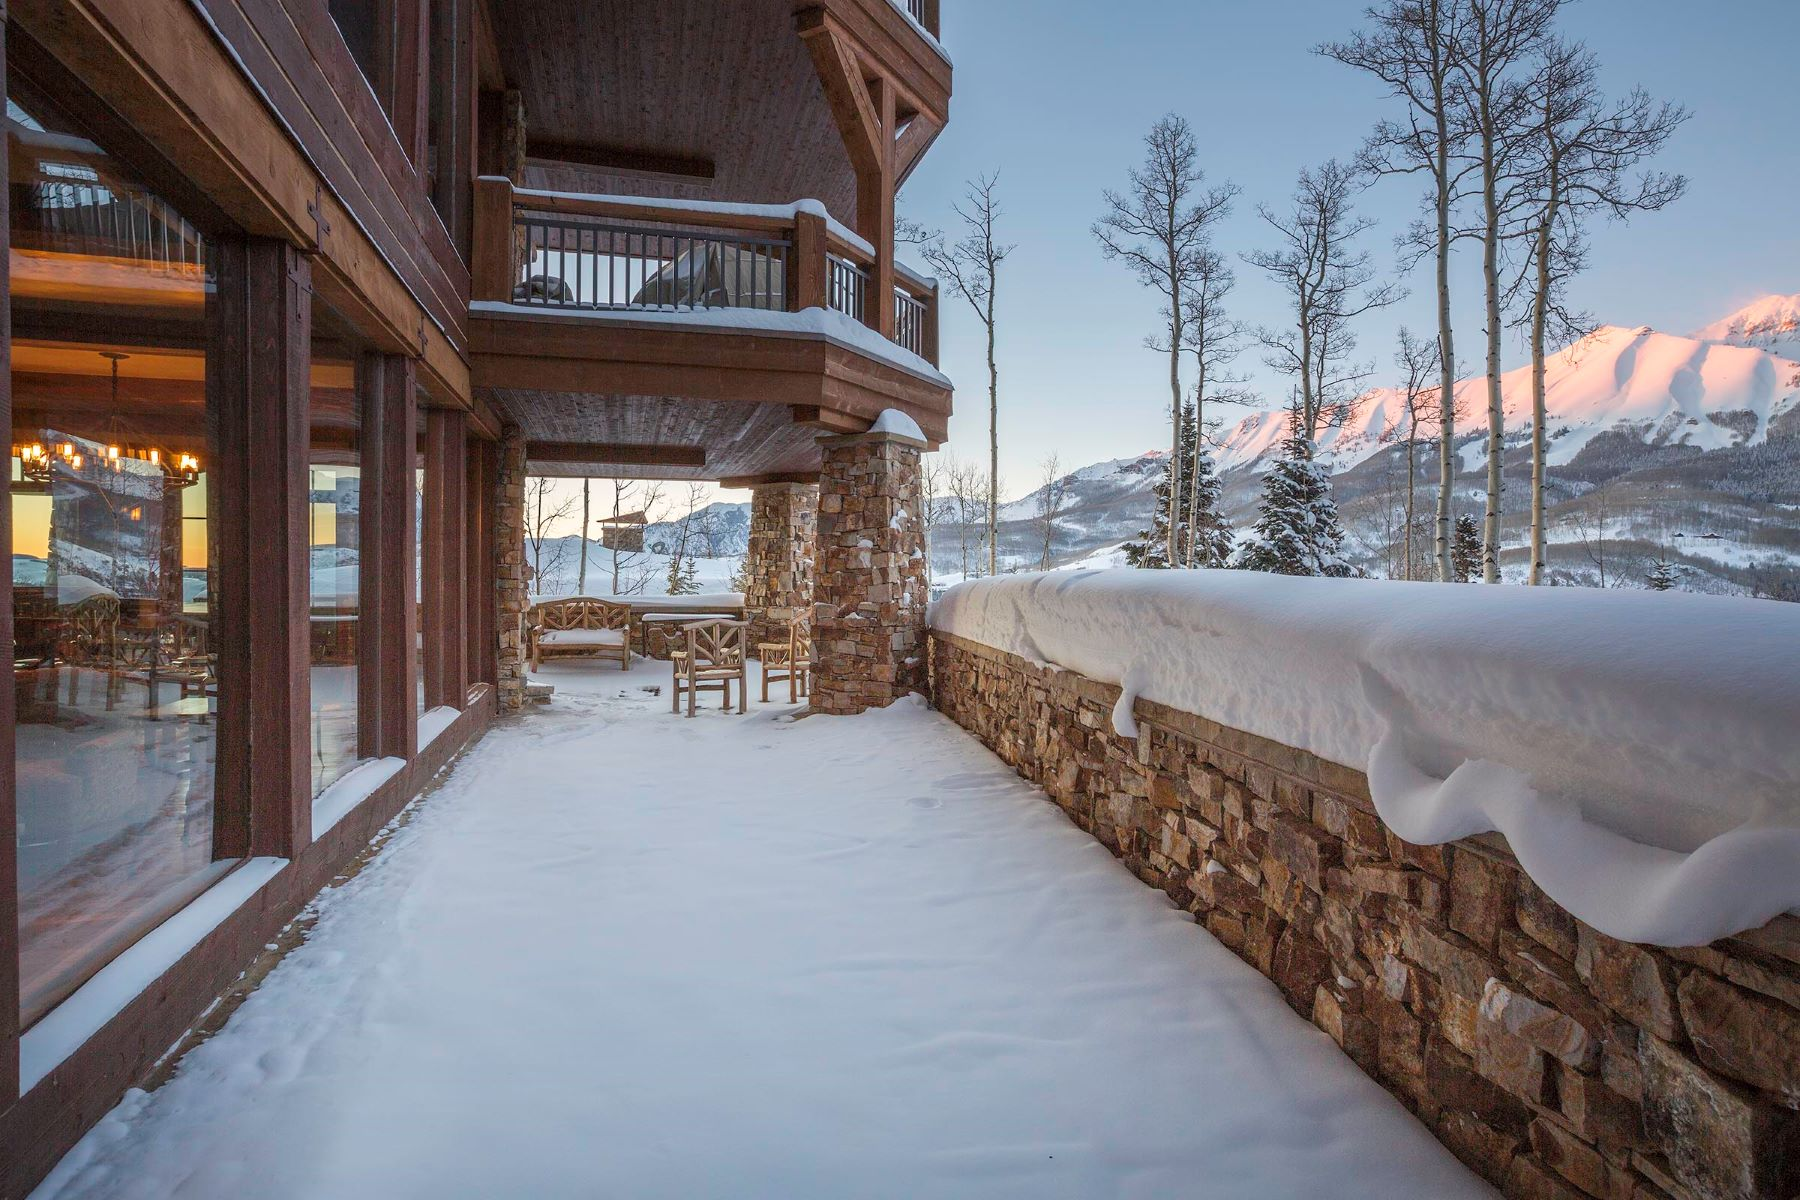 Additional photo for property listing at See Forever B101 145 Sunny Ridge Place, Unit B101 Mountain Village, Colorado 81435 United States